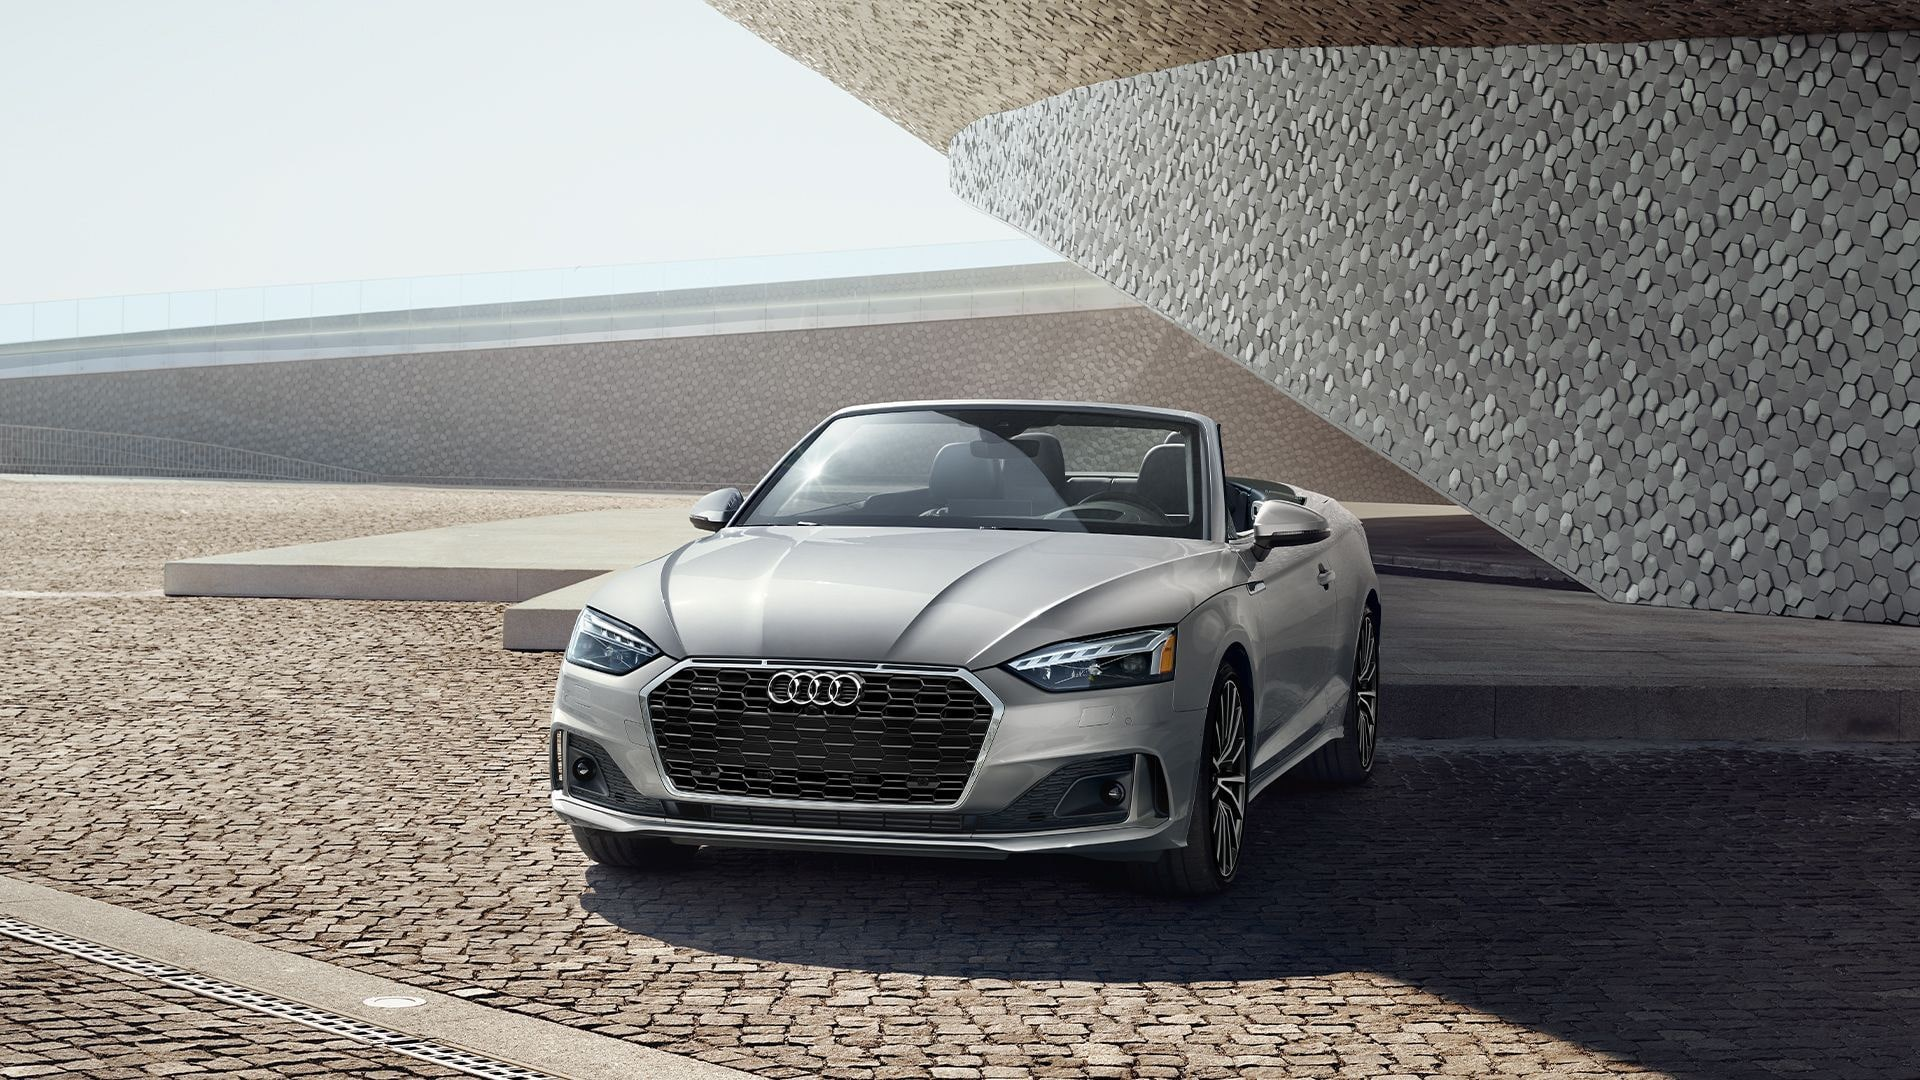 2021 Audi A5 Cabriolet Luxury Convertible Audi Usa